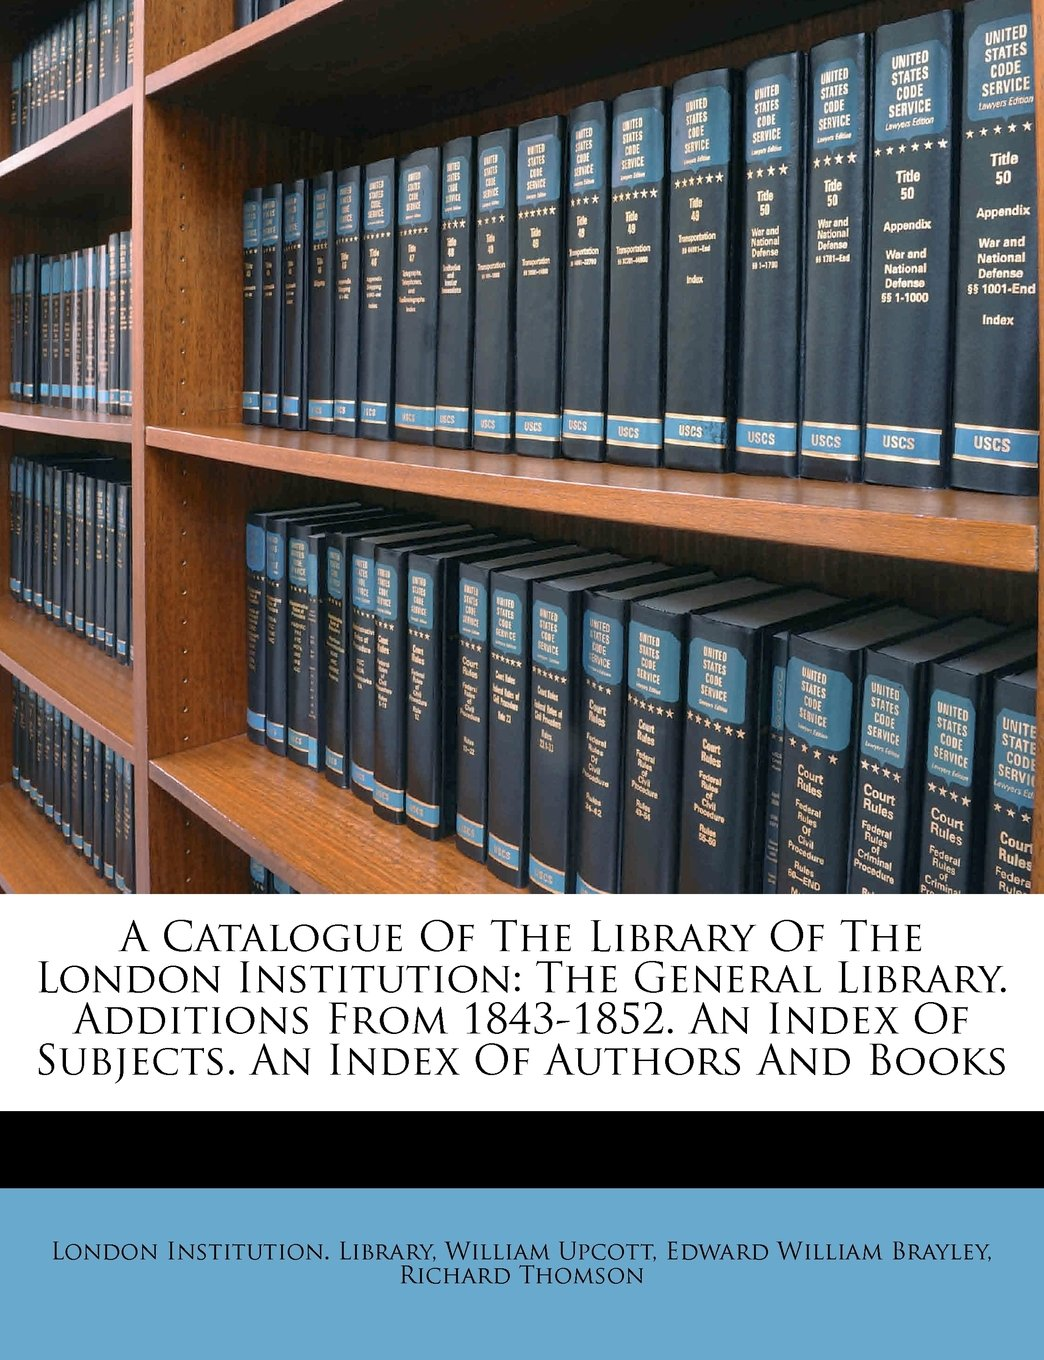 A Catalogue Of The Library Of The London Institution: The General Library. Additions From 1843-1852. An Index Of Subjects. An Index Of Authors And Books pdf epub